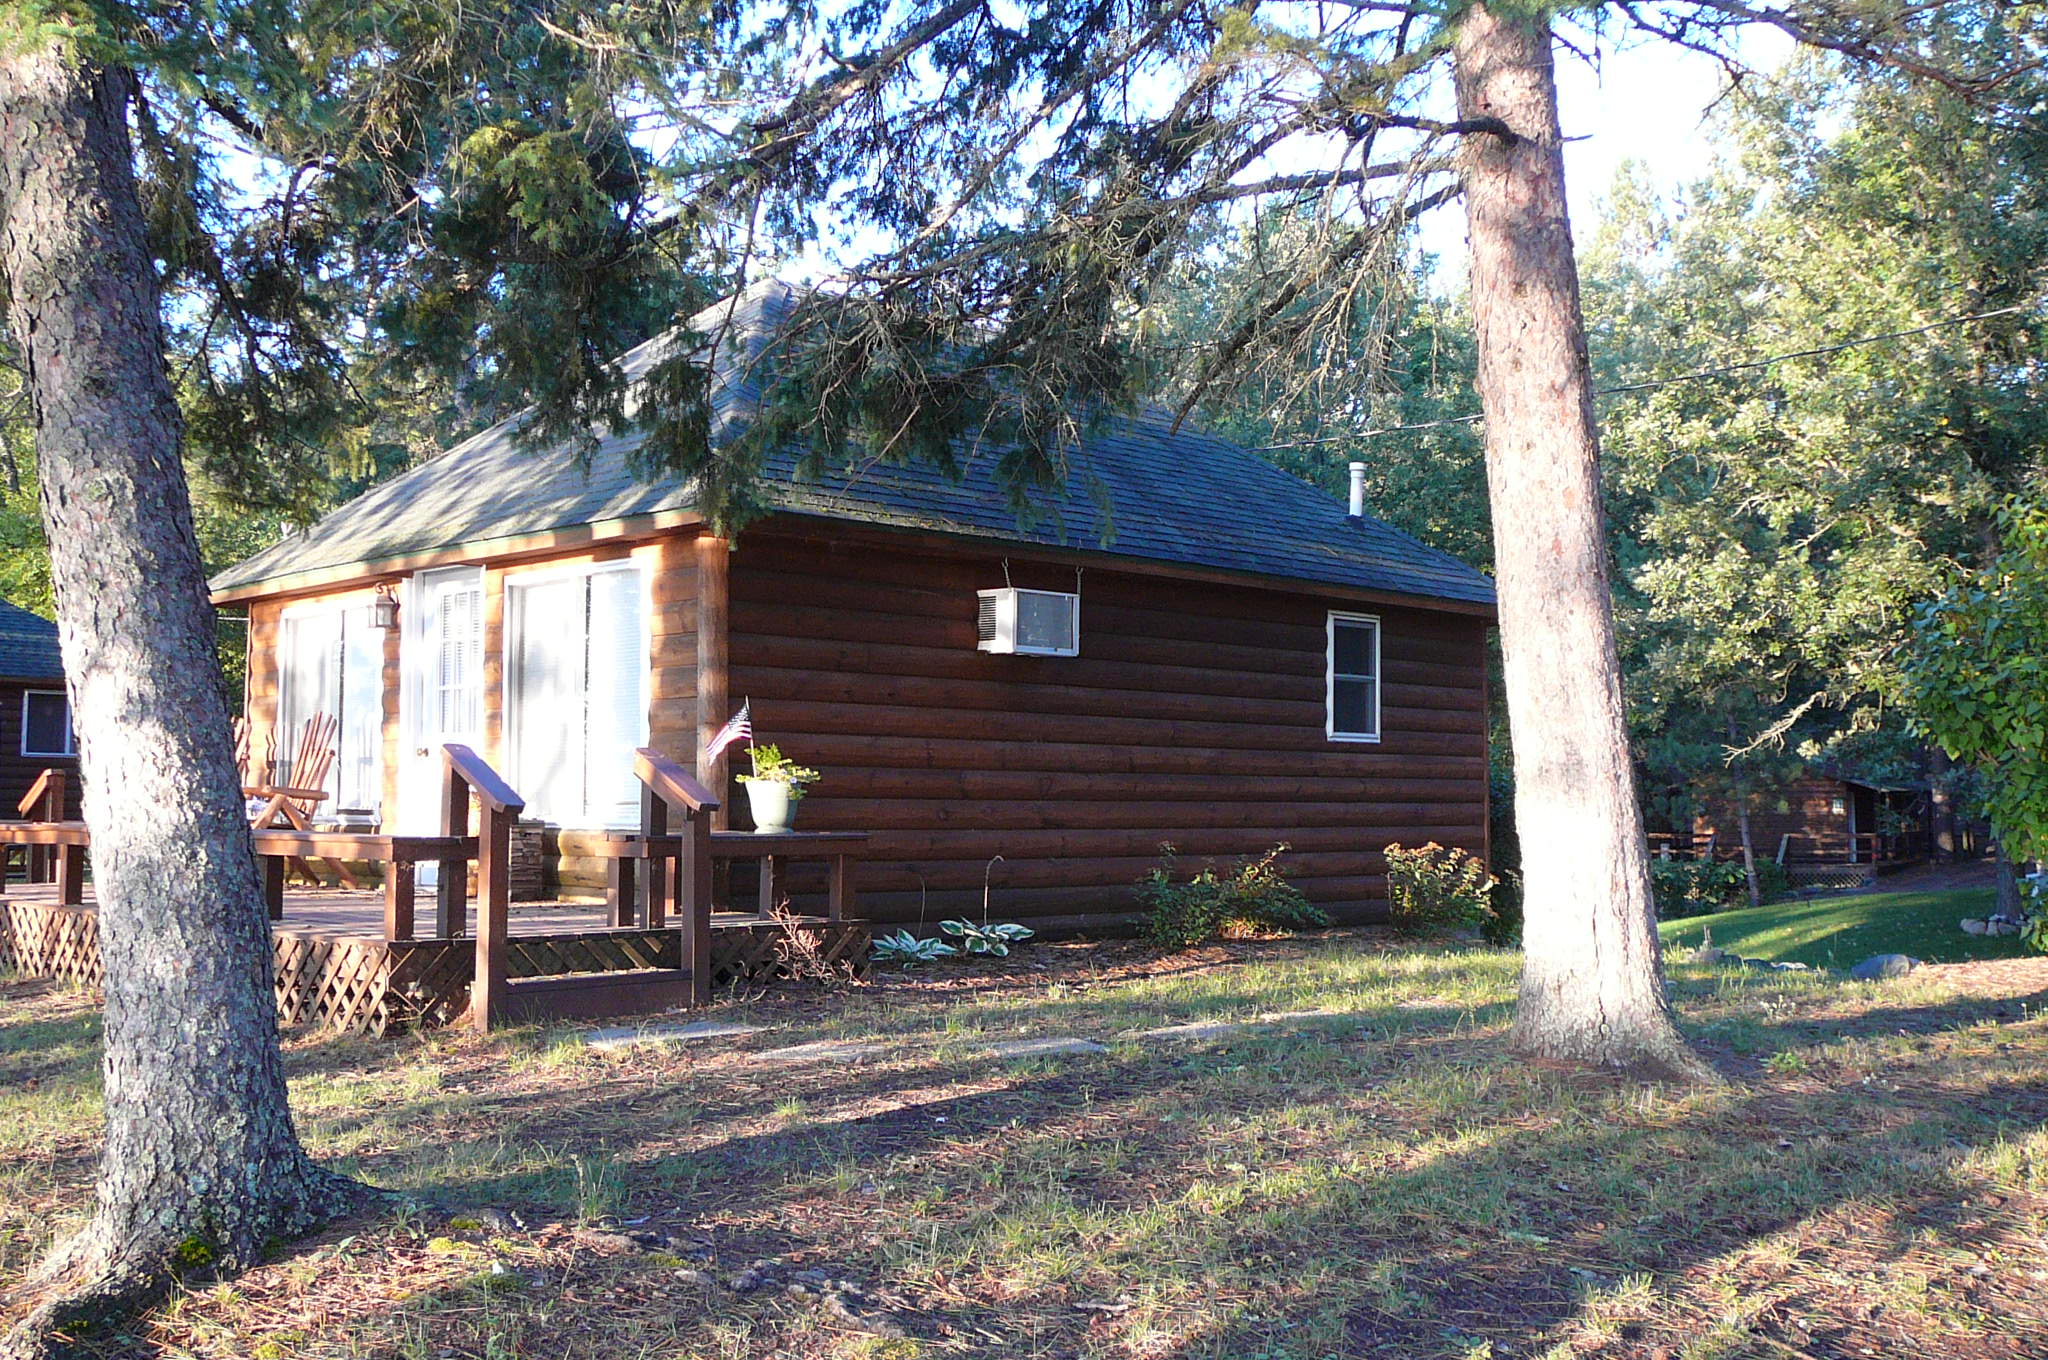 mn rent info interior onlinechange cabins for log to in private cabin rental winter ely minnesota